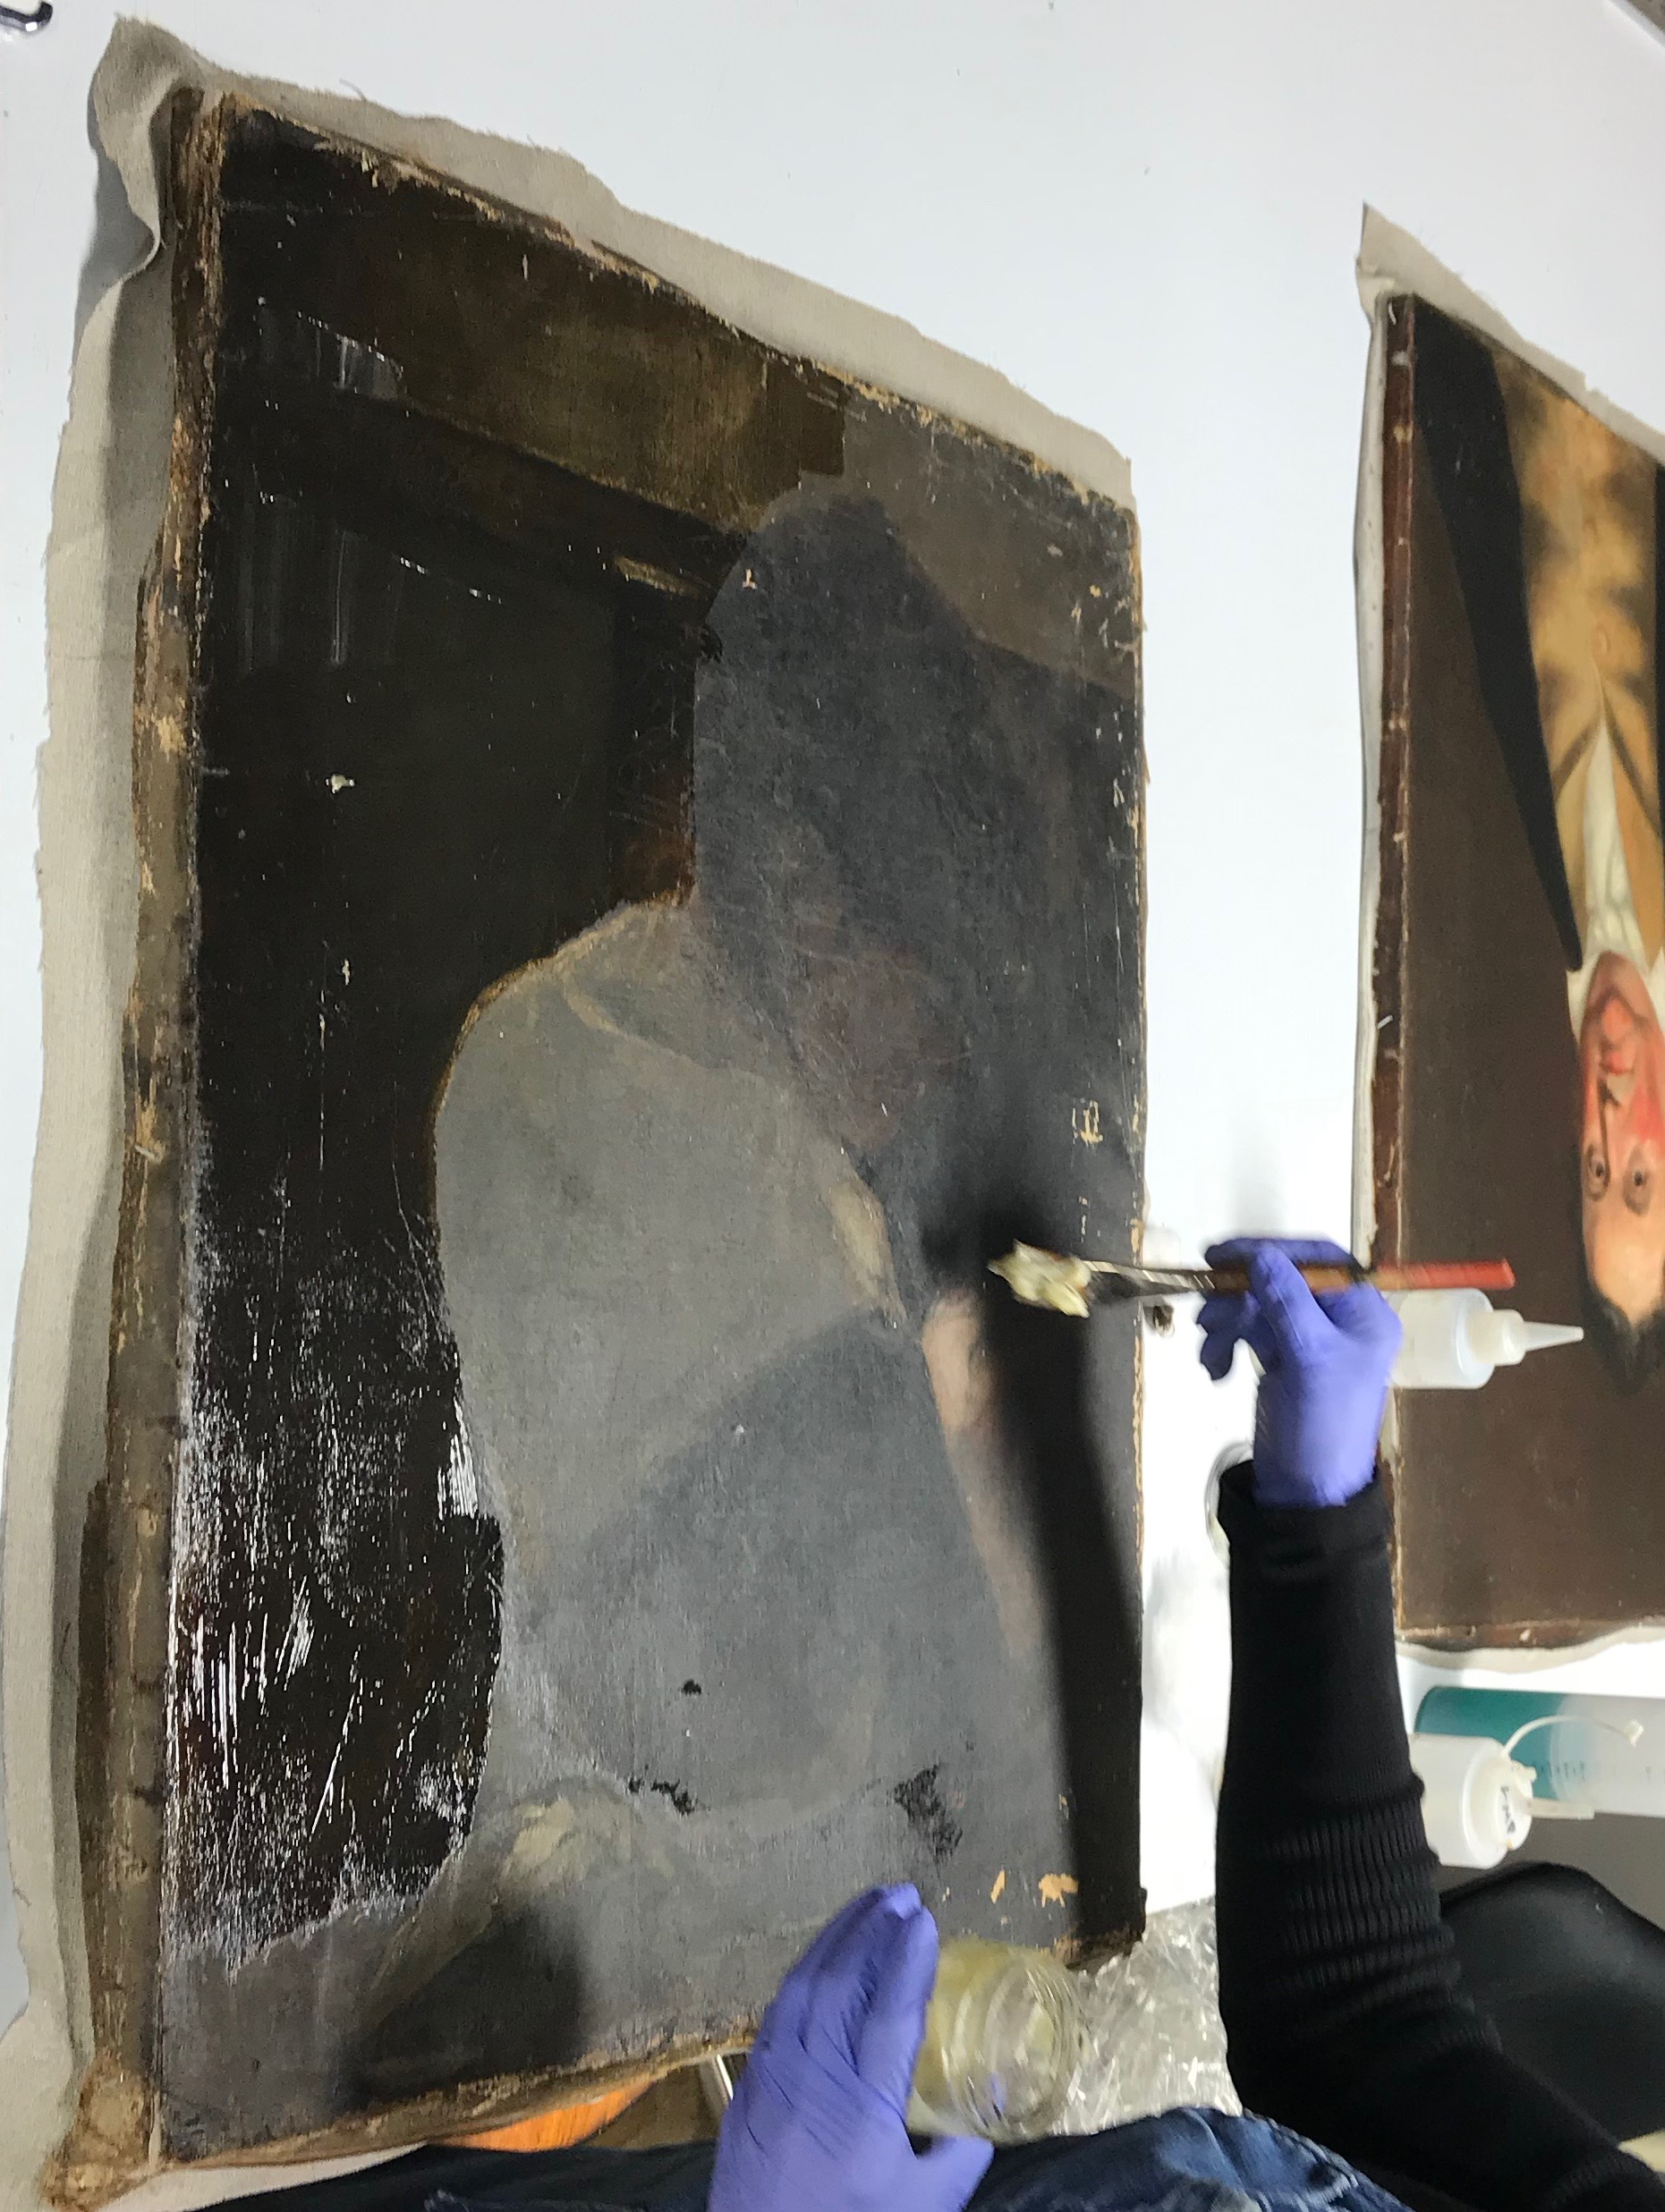 During Conservation Treatment, the surface is cleaned of soot, grime and nicotine accumulation.